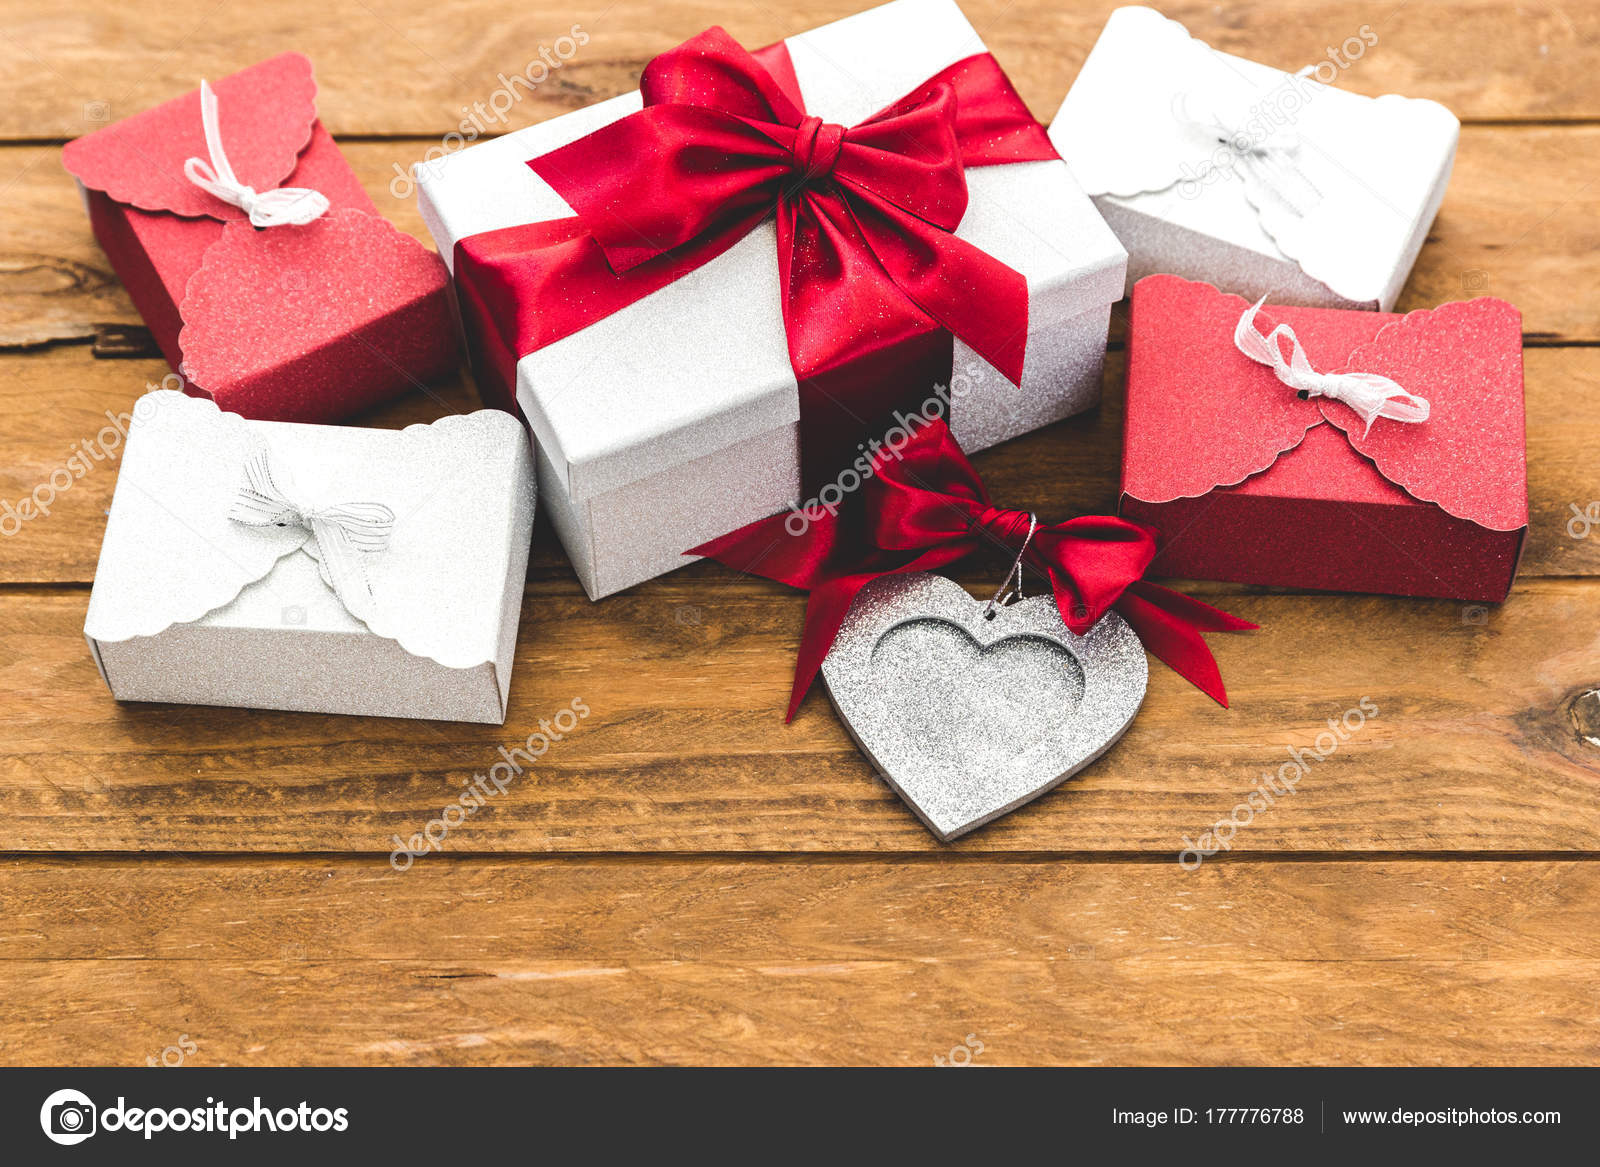 Wrapped Present Boxes Red Bow Wooden Board Holidays Concept Birthday